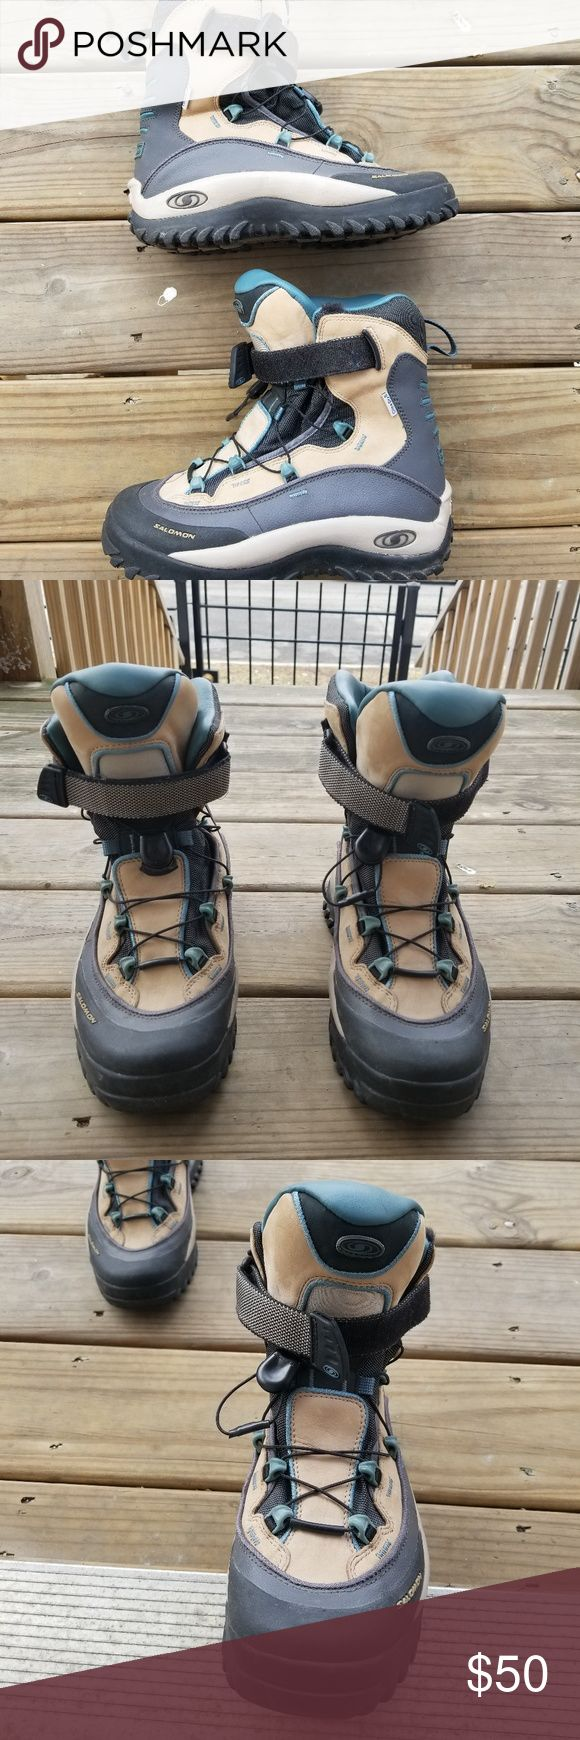 Salomon Boots Clima-dry Thinsulate Winter/Trail/Hiking Outdoor Boots. Contagrip Soles, Bungee lace & Velcro strap Interior is padded - Thinsulate lined, these are in Excellent Condition, very clean with barely-worn treads From a clean, non-smoking home. Salomon Shoes Winter & Rain Boots